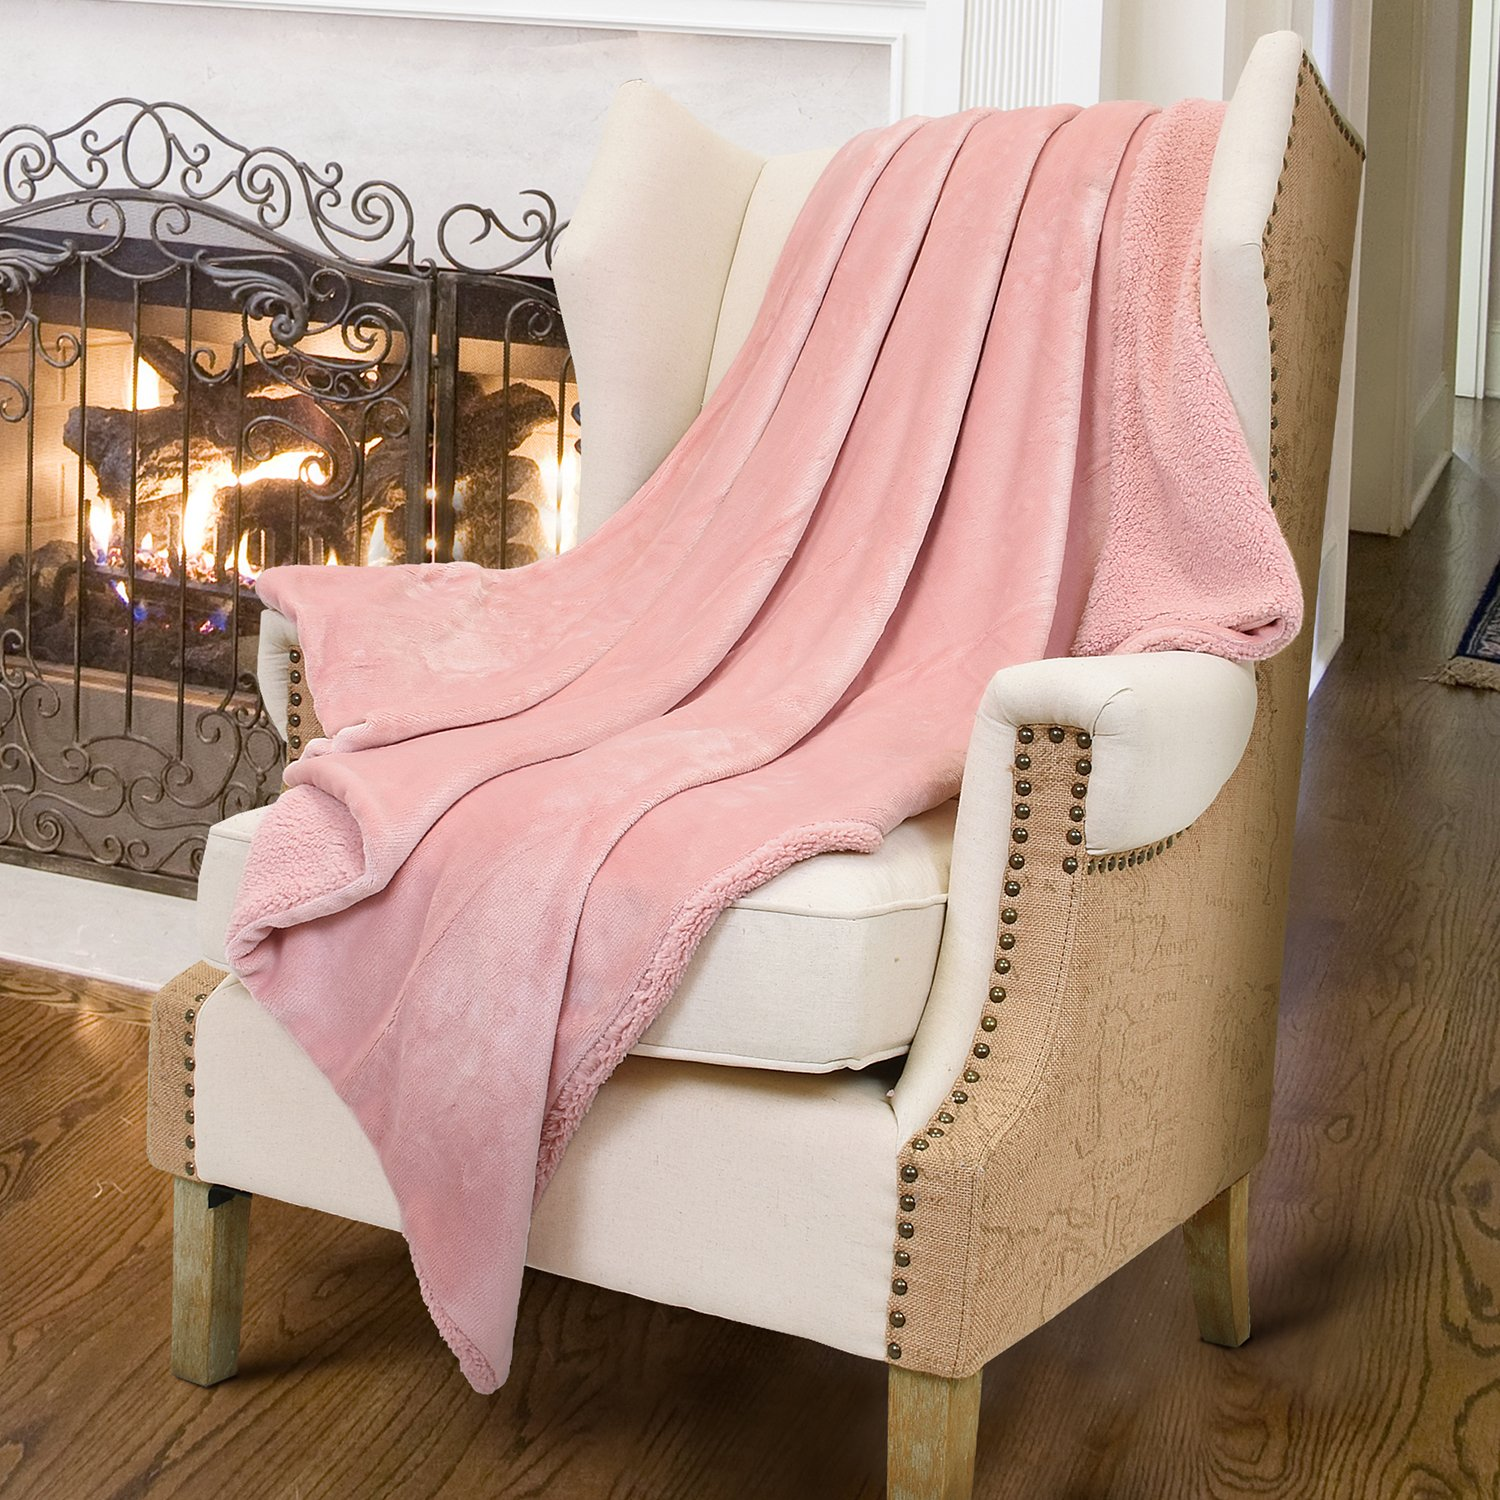 """Catalonia Pink Sherpa Throws Blanket for Girls,Super Soft Comfy Fuzzy Micro Plush Fleece Snuggle Blanket for Sofa Couch TV Bed Reversible Match Color All Season 50""""x60"""""""